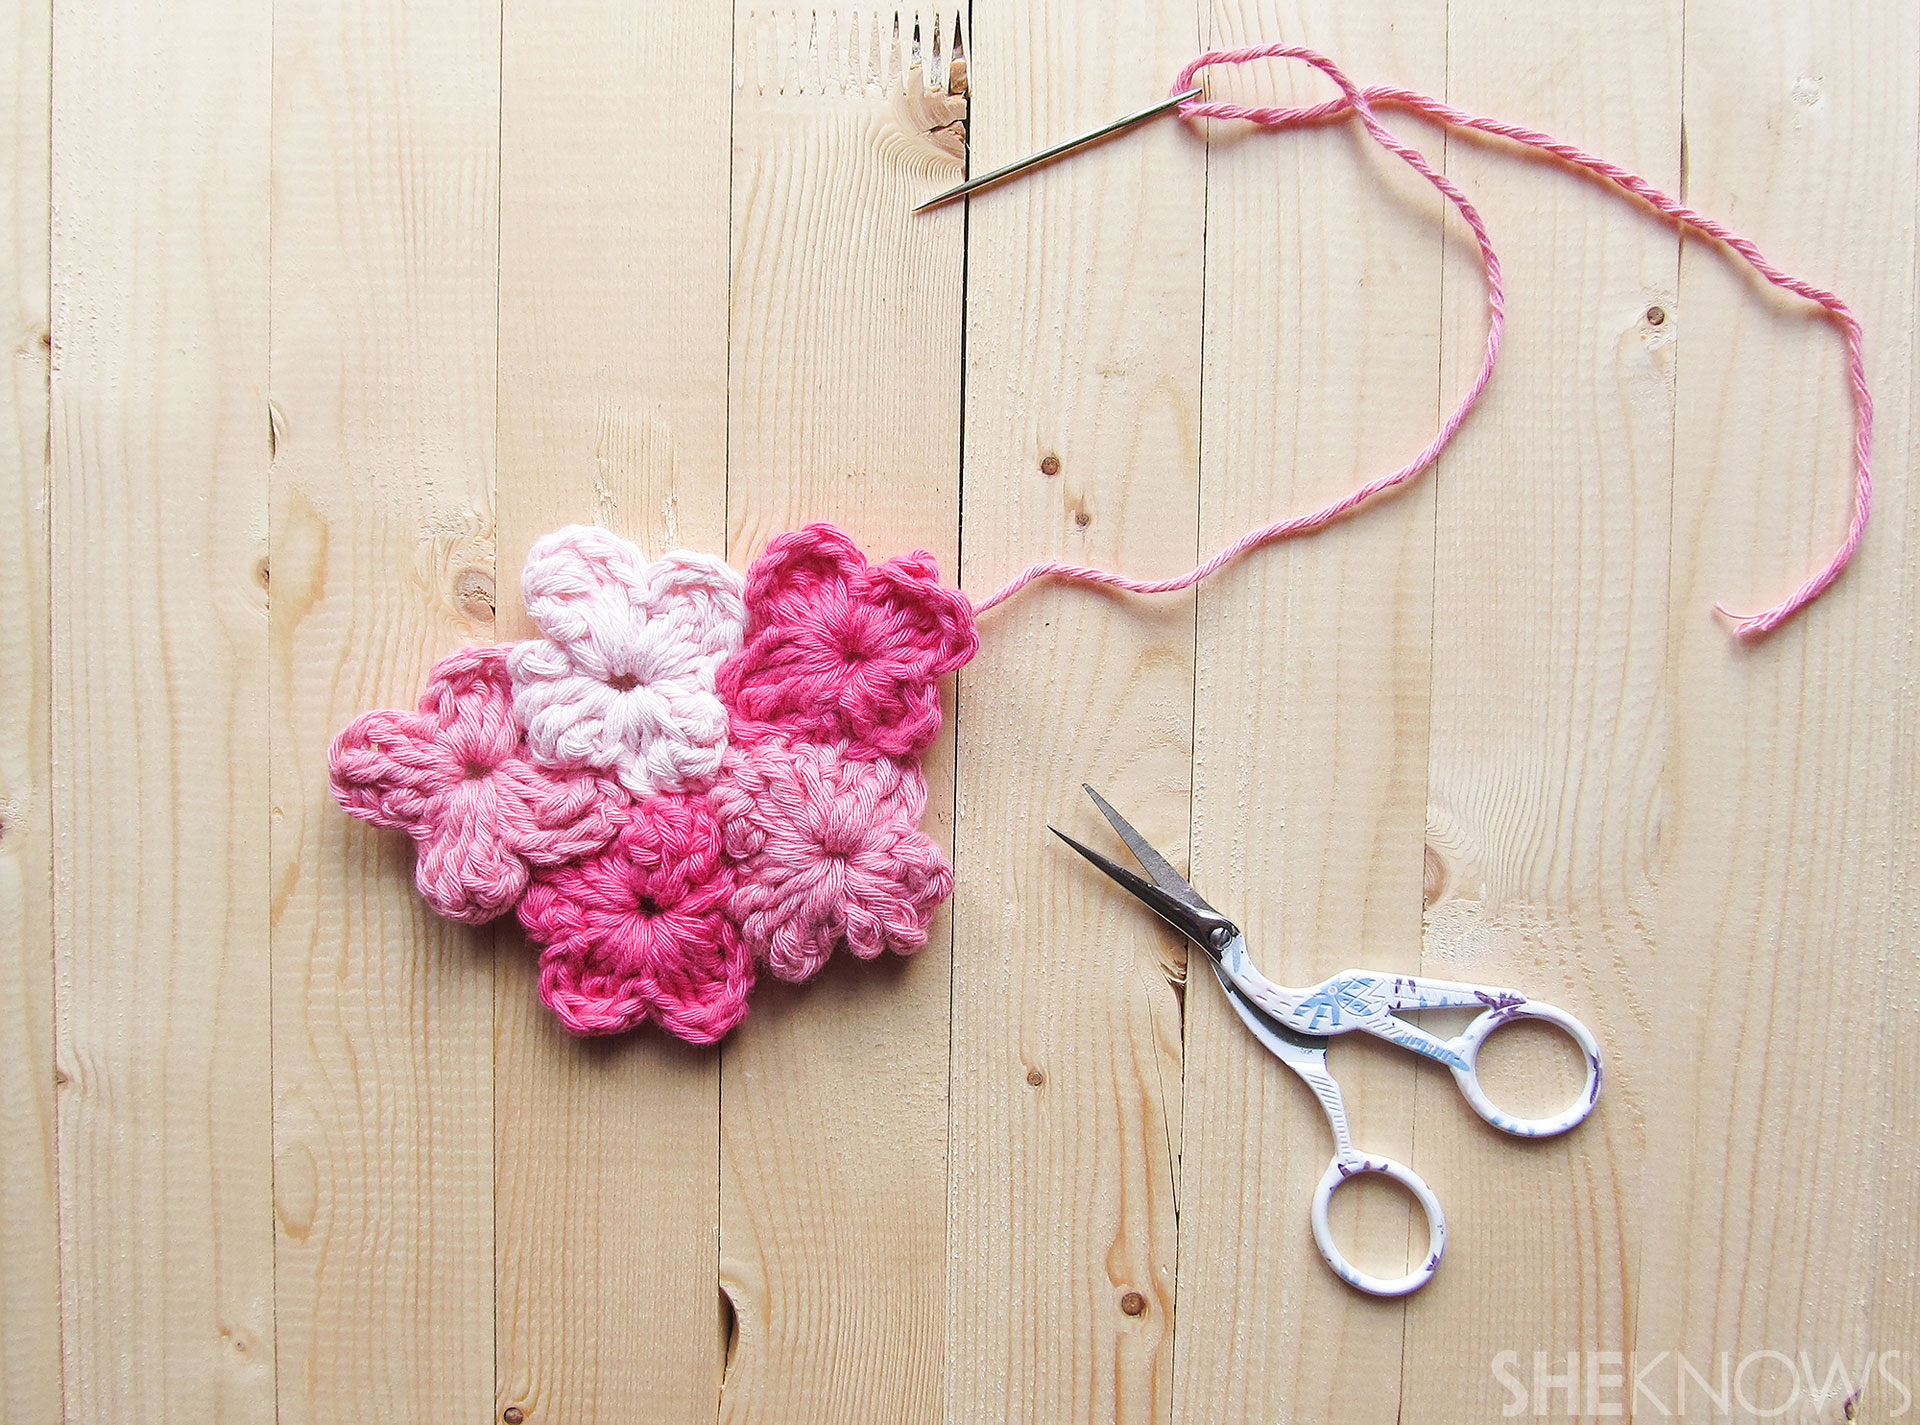 DIY Crocheted Mother's Day card: Flower assembly 1